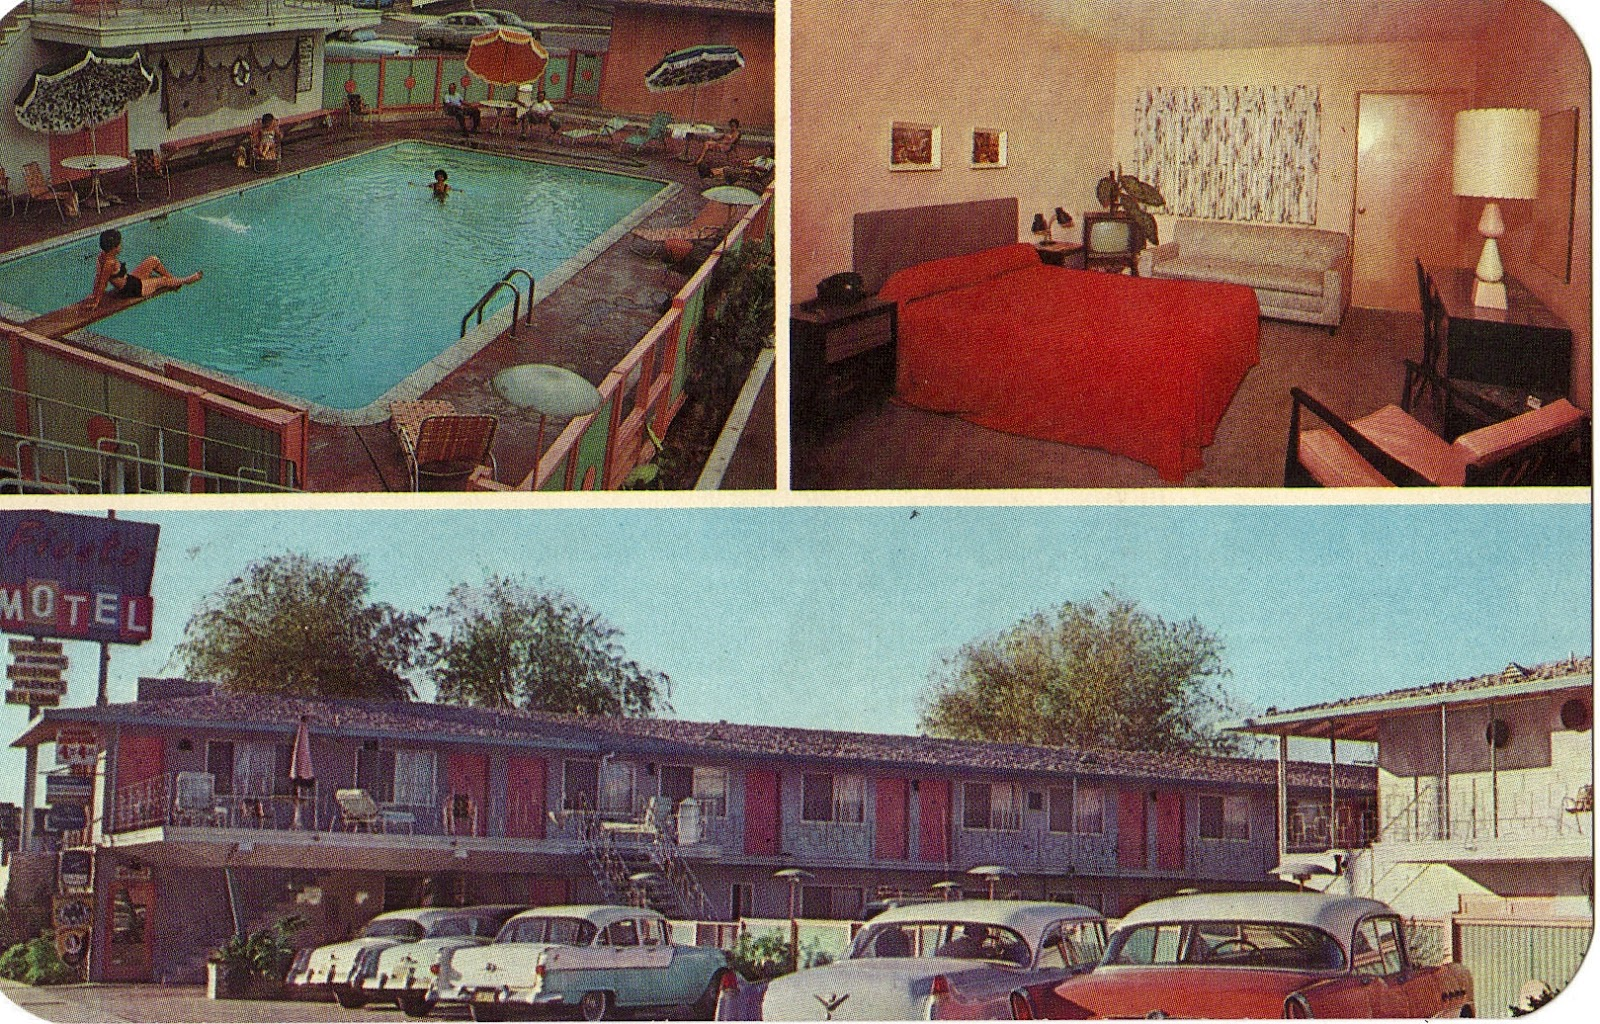 Hollywood Motel Fiesta Motor Hotel In North Hollywood Postcard San Fernando